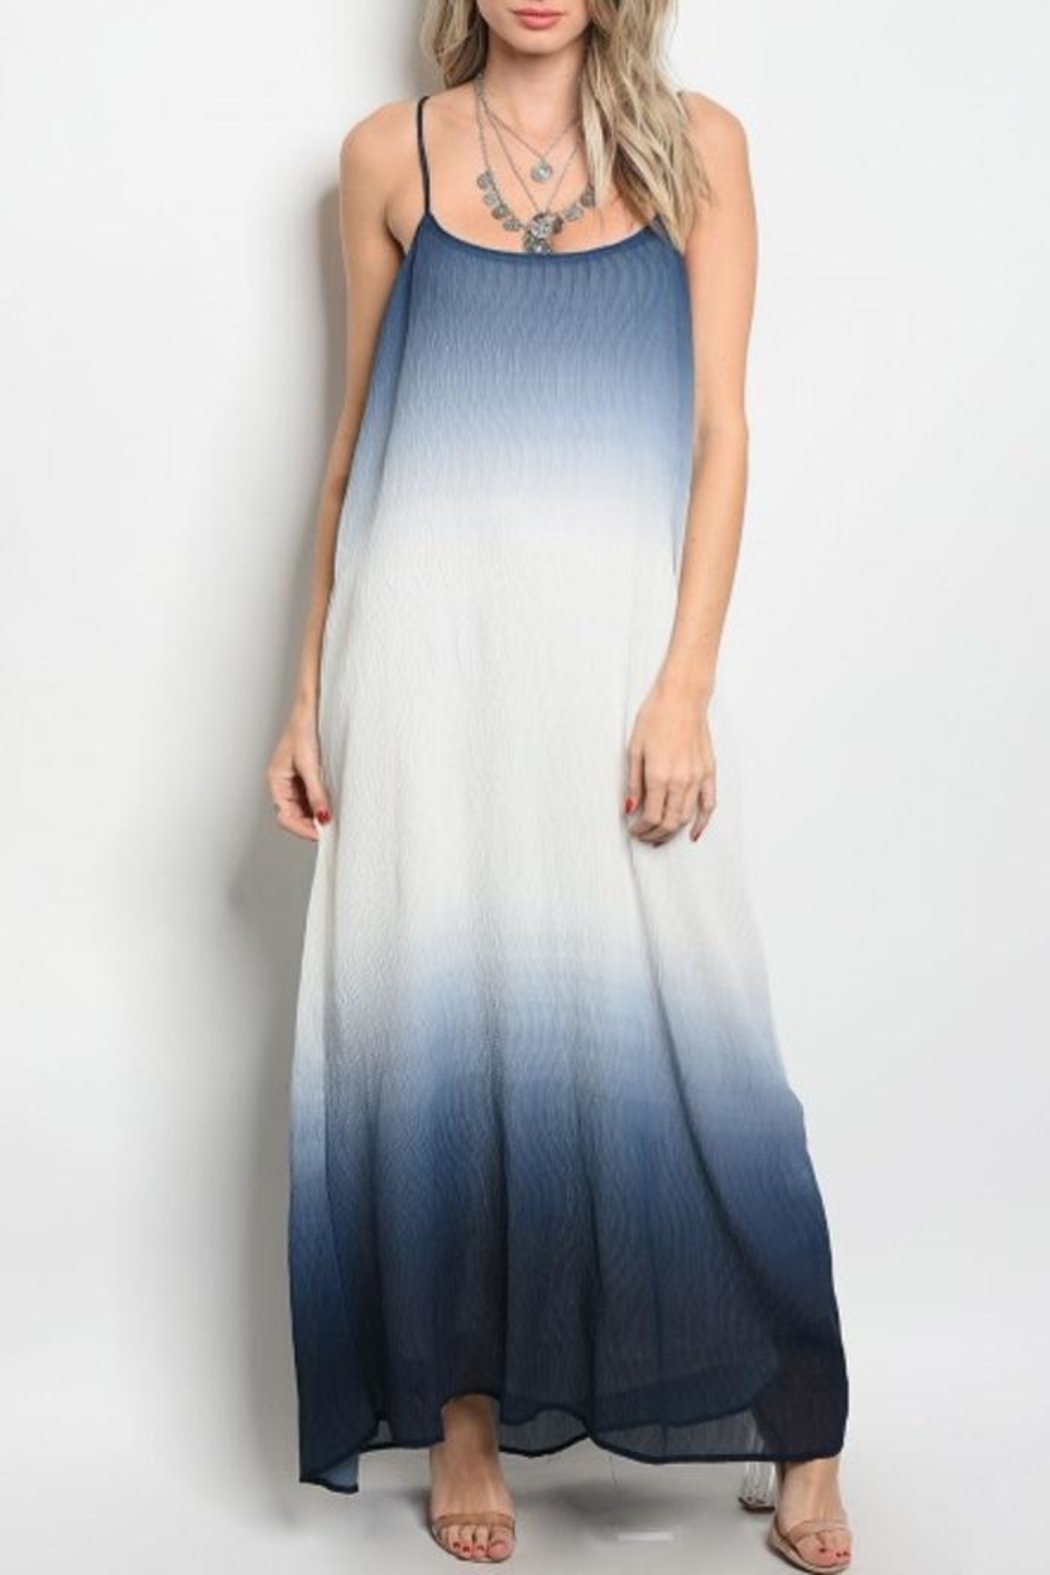 People Outfitter Maxi Dip-Dye Dress - Main Image